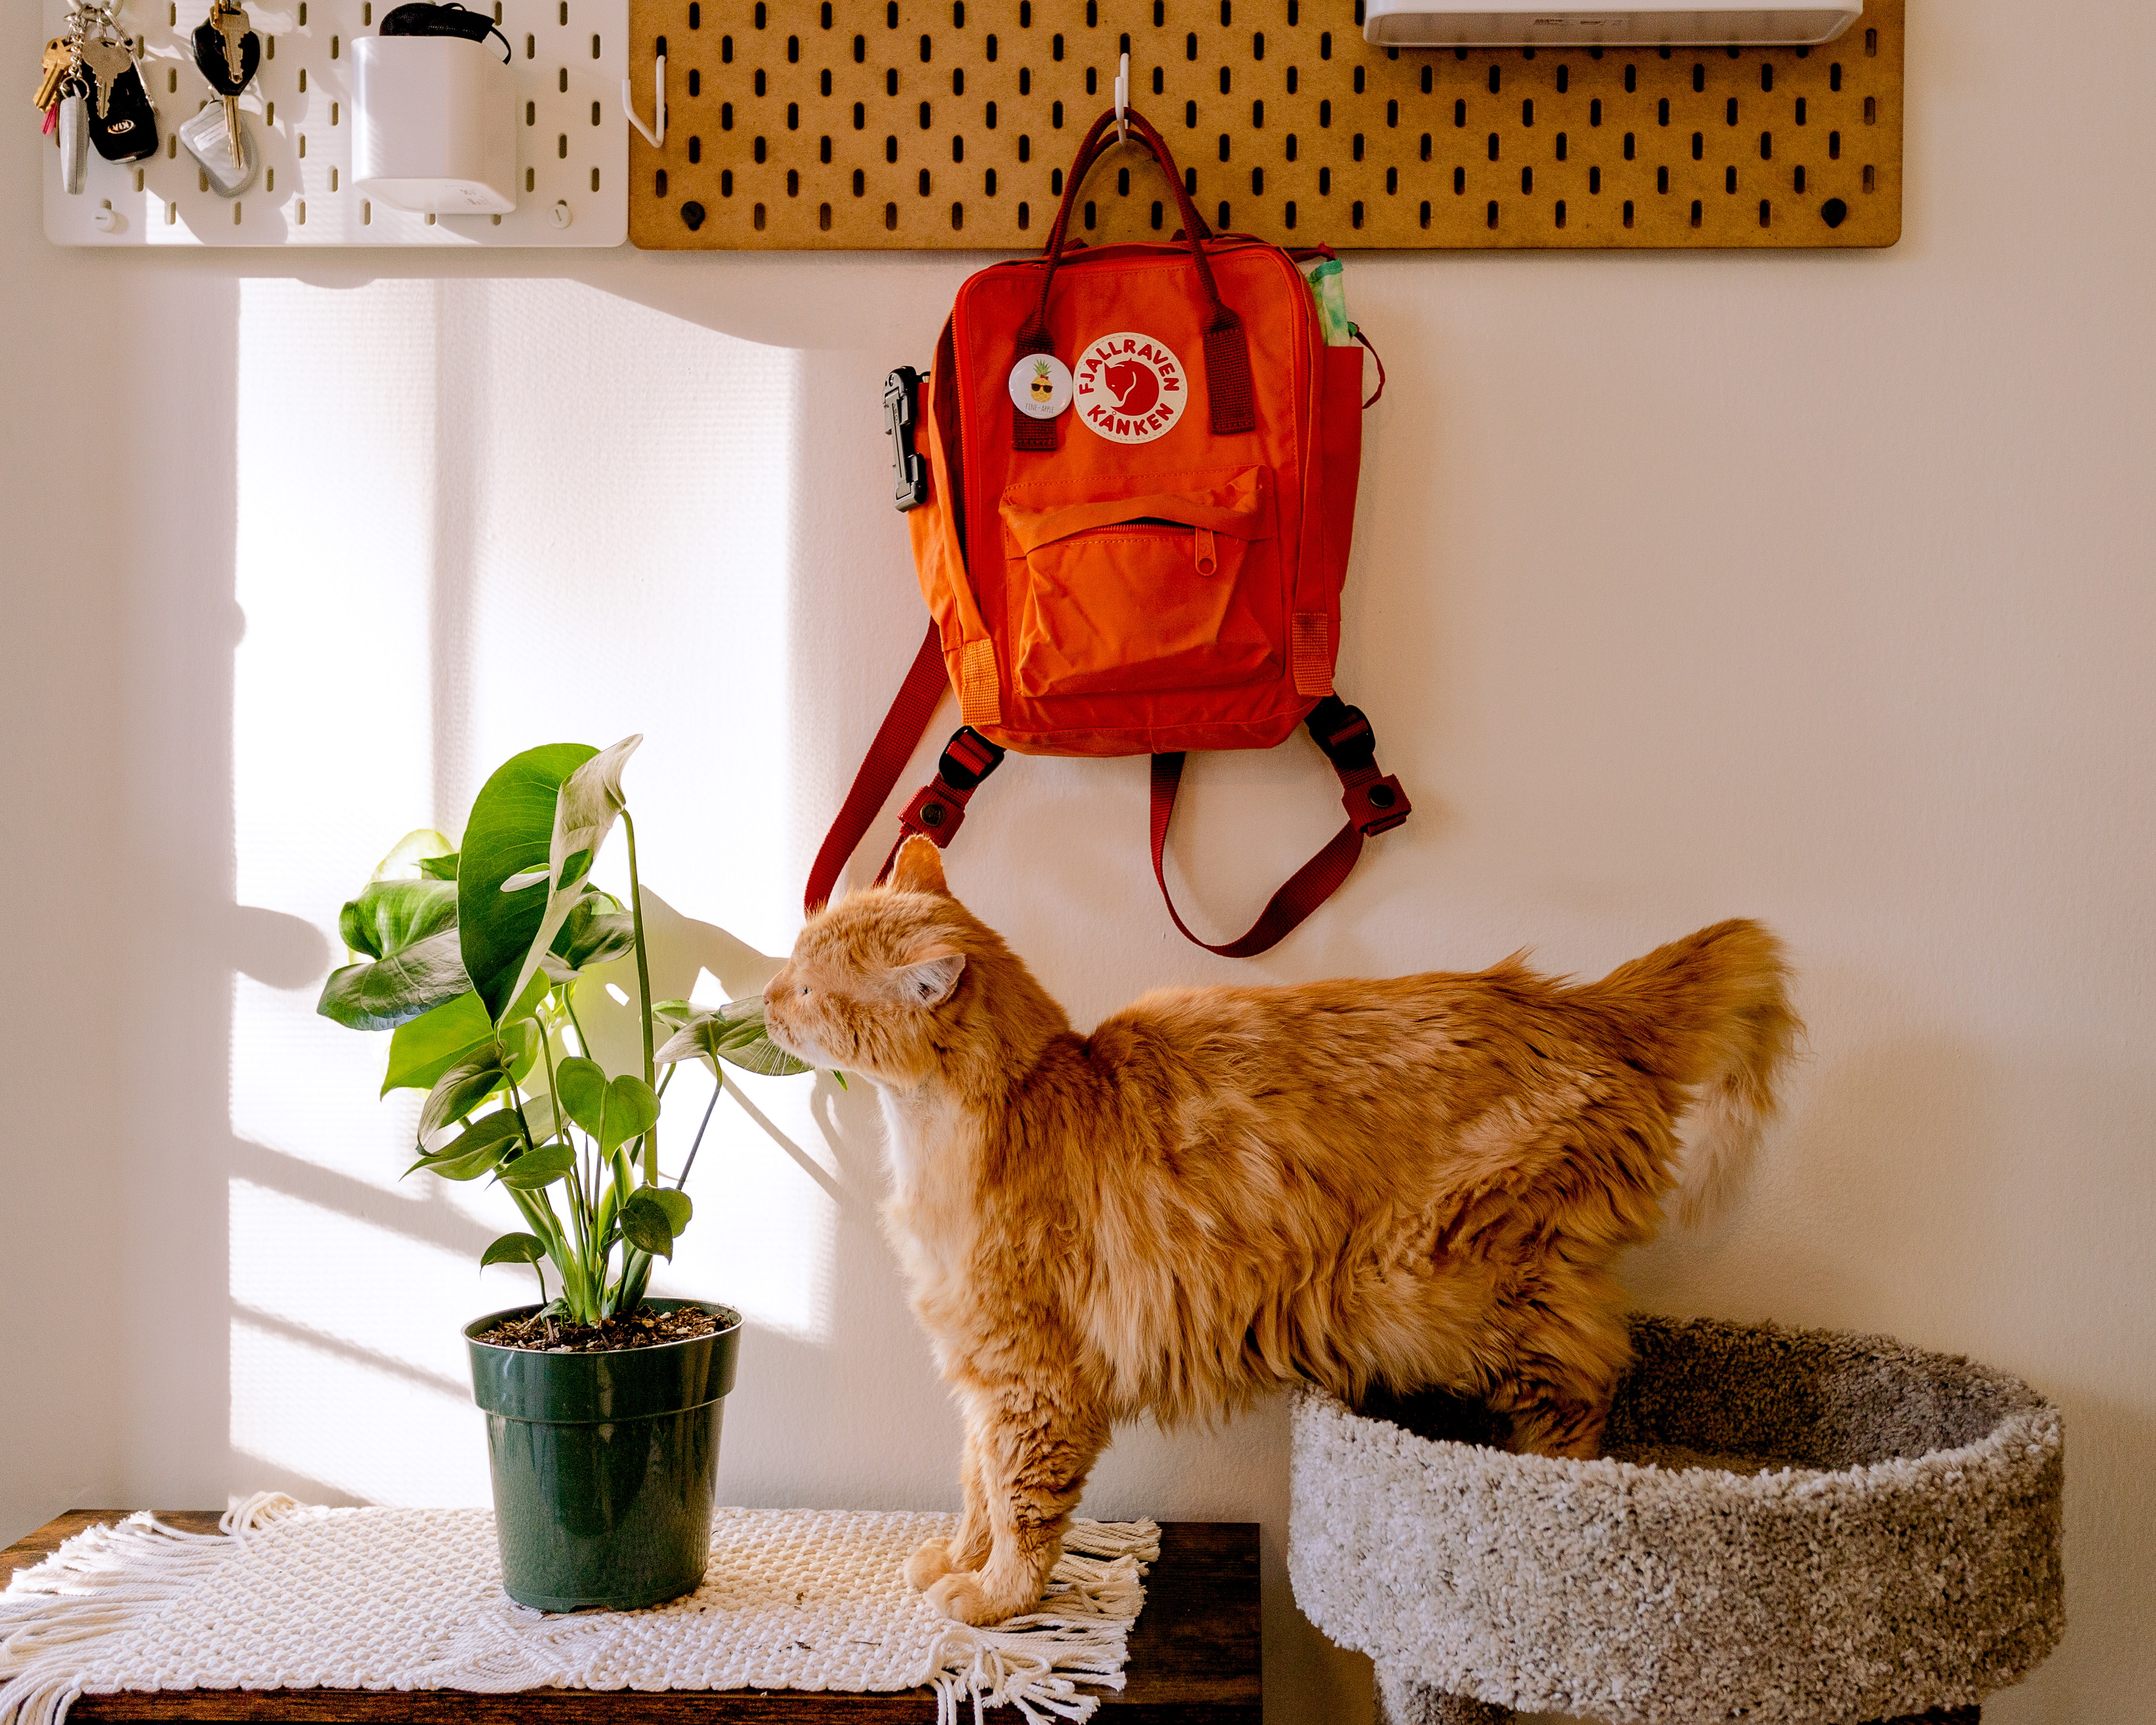 How to Prepare Your Apartment for a New Pet